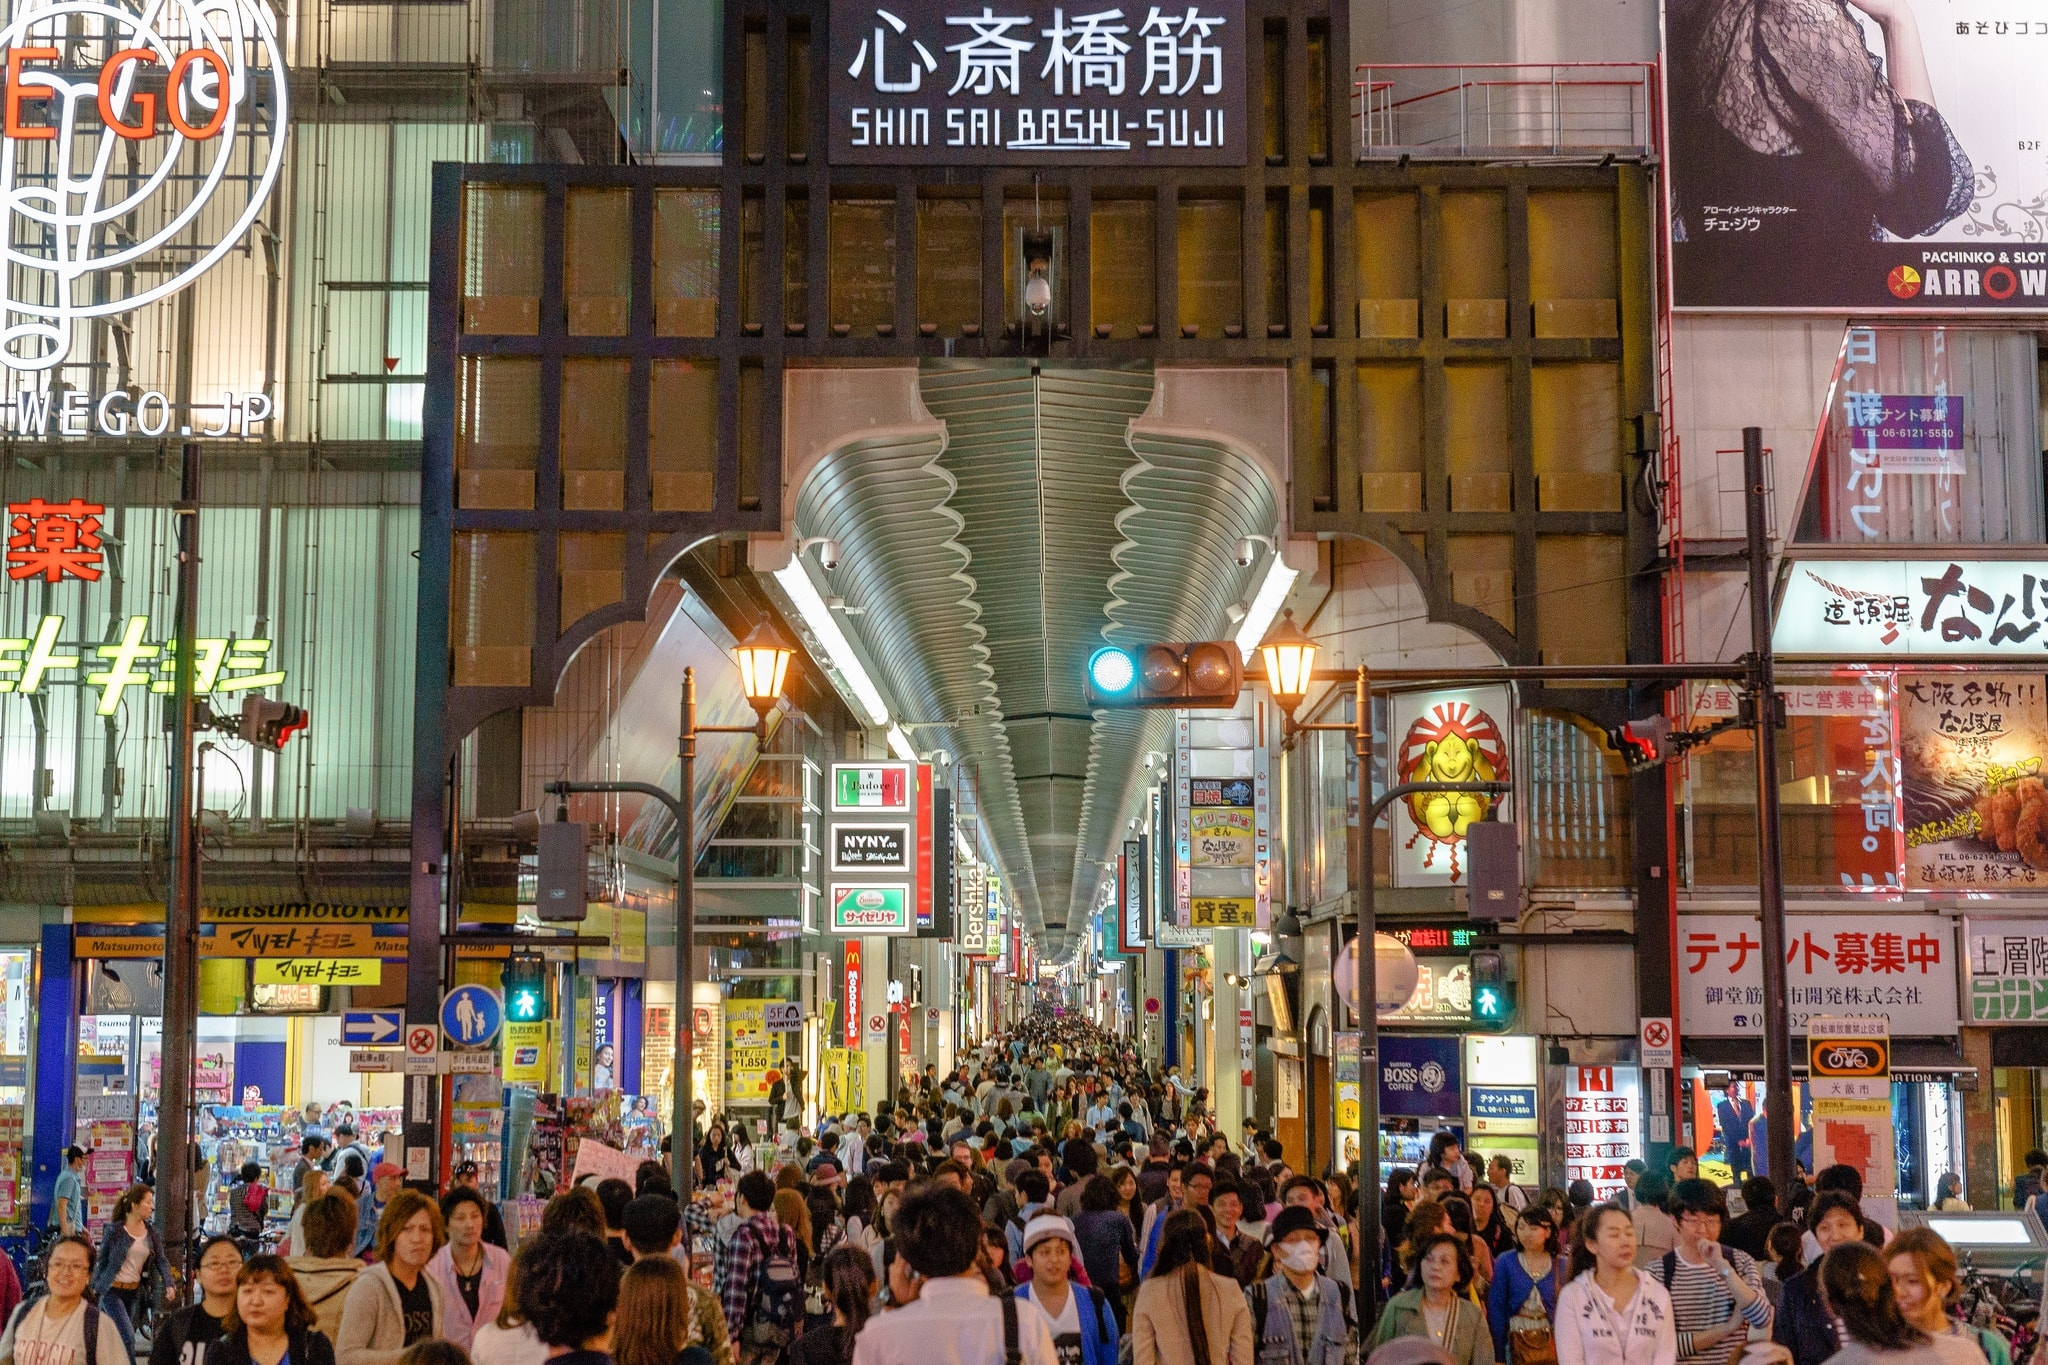 The Top 10 Things To Do and See In Shinsaibashi